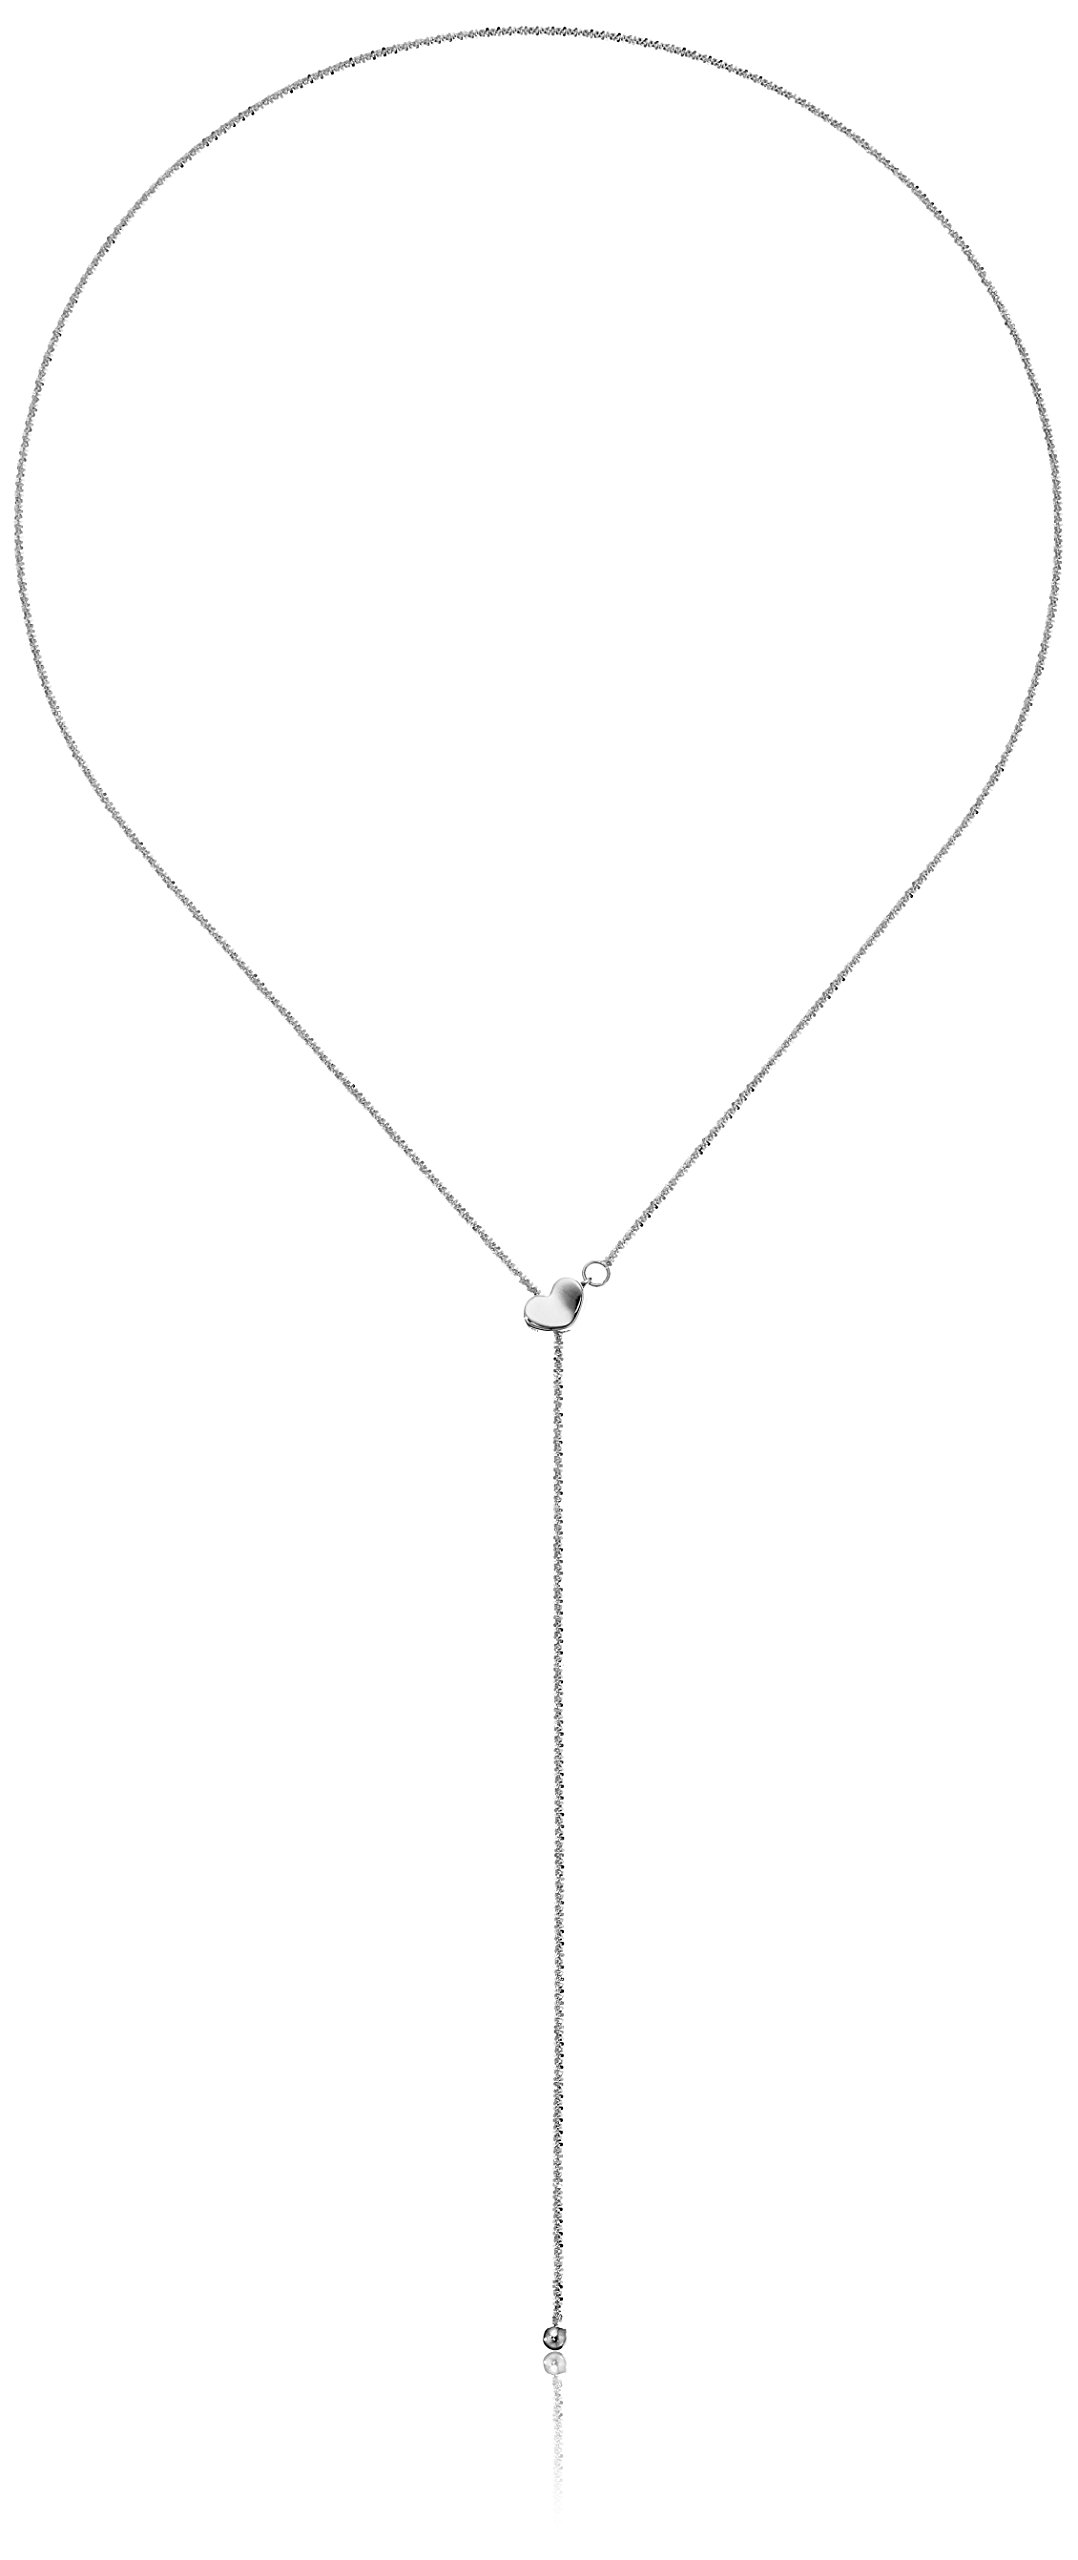 14k White Gold Adjustable Heart Lariat Sparkle Chain Y-Shaped Necklace, 22''